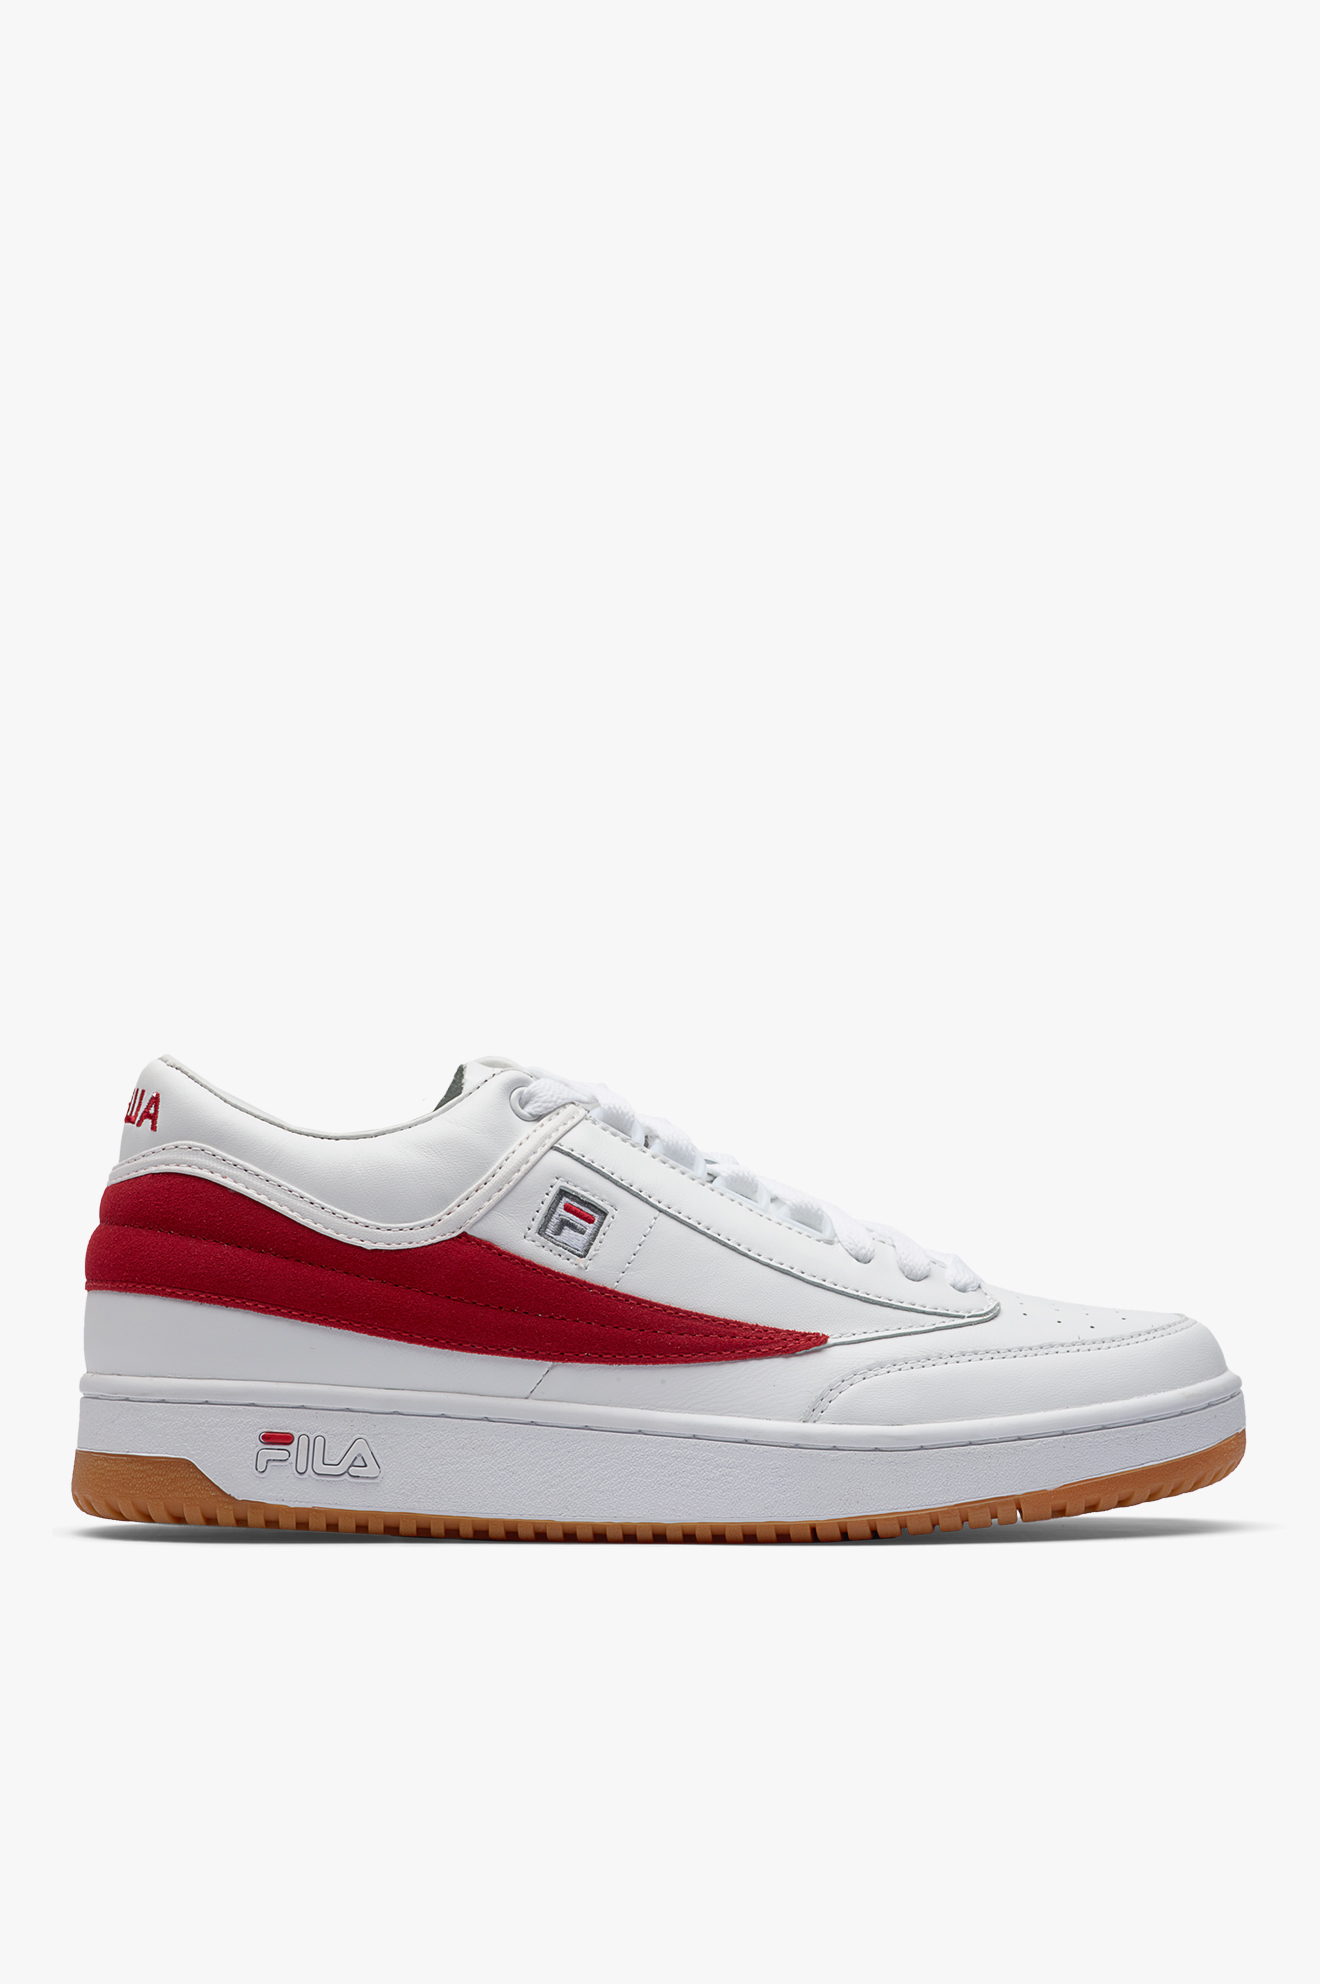 Fila T-1 Mid White/Red